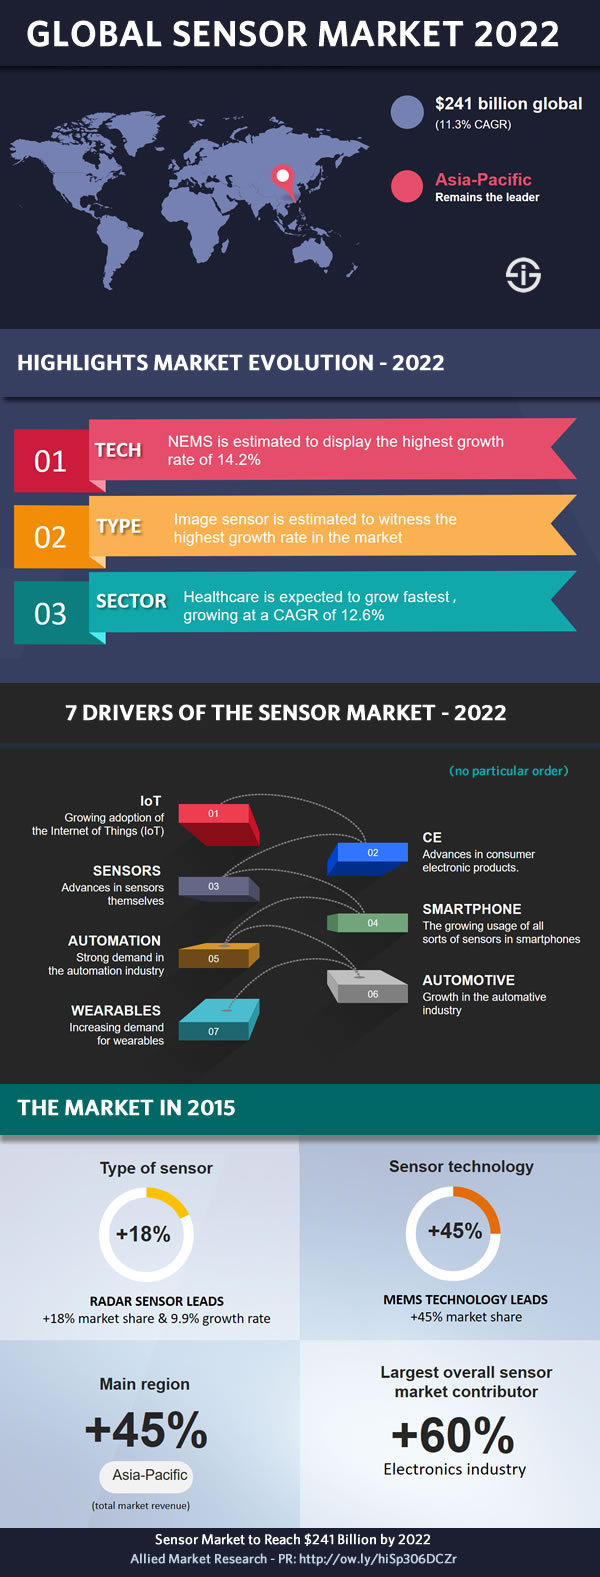 Global sensor market 2022 forecast infographic – source Allied Market Research